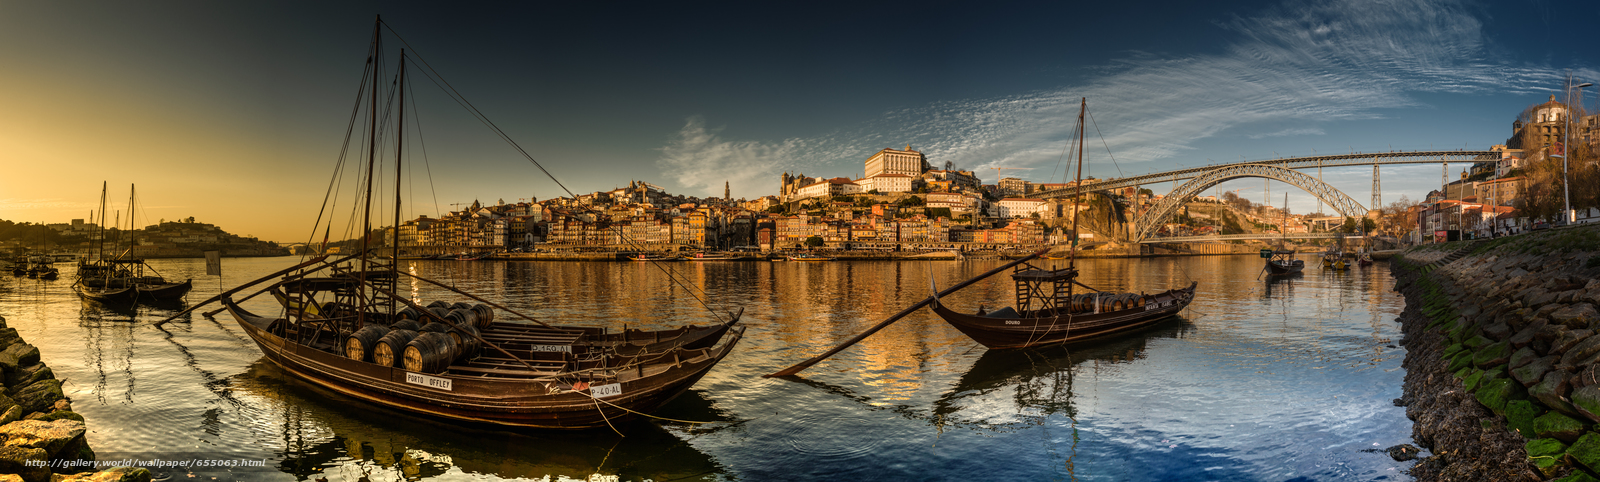 Download wallpaper Vila Nova de Gaia,  Porto,  Portugal,  Douro River free desktop wallpaper in the resolution 8000x2408 — picture №655063